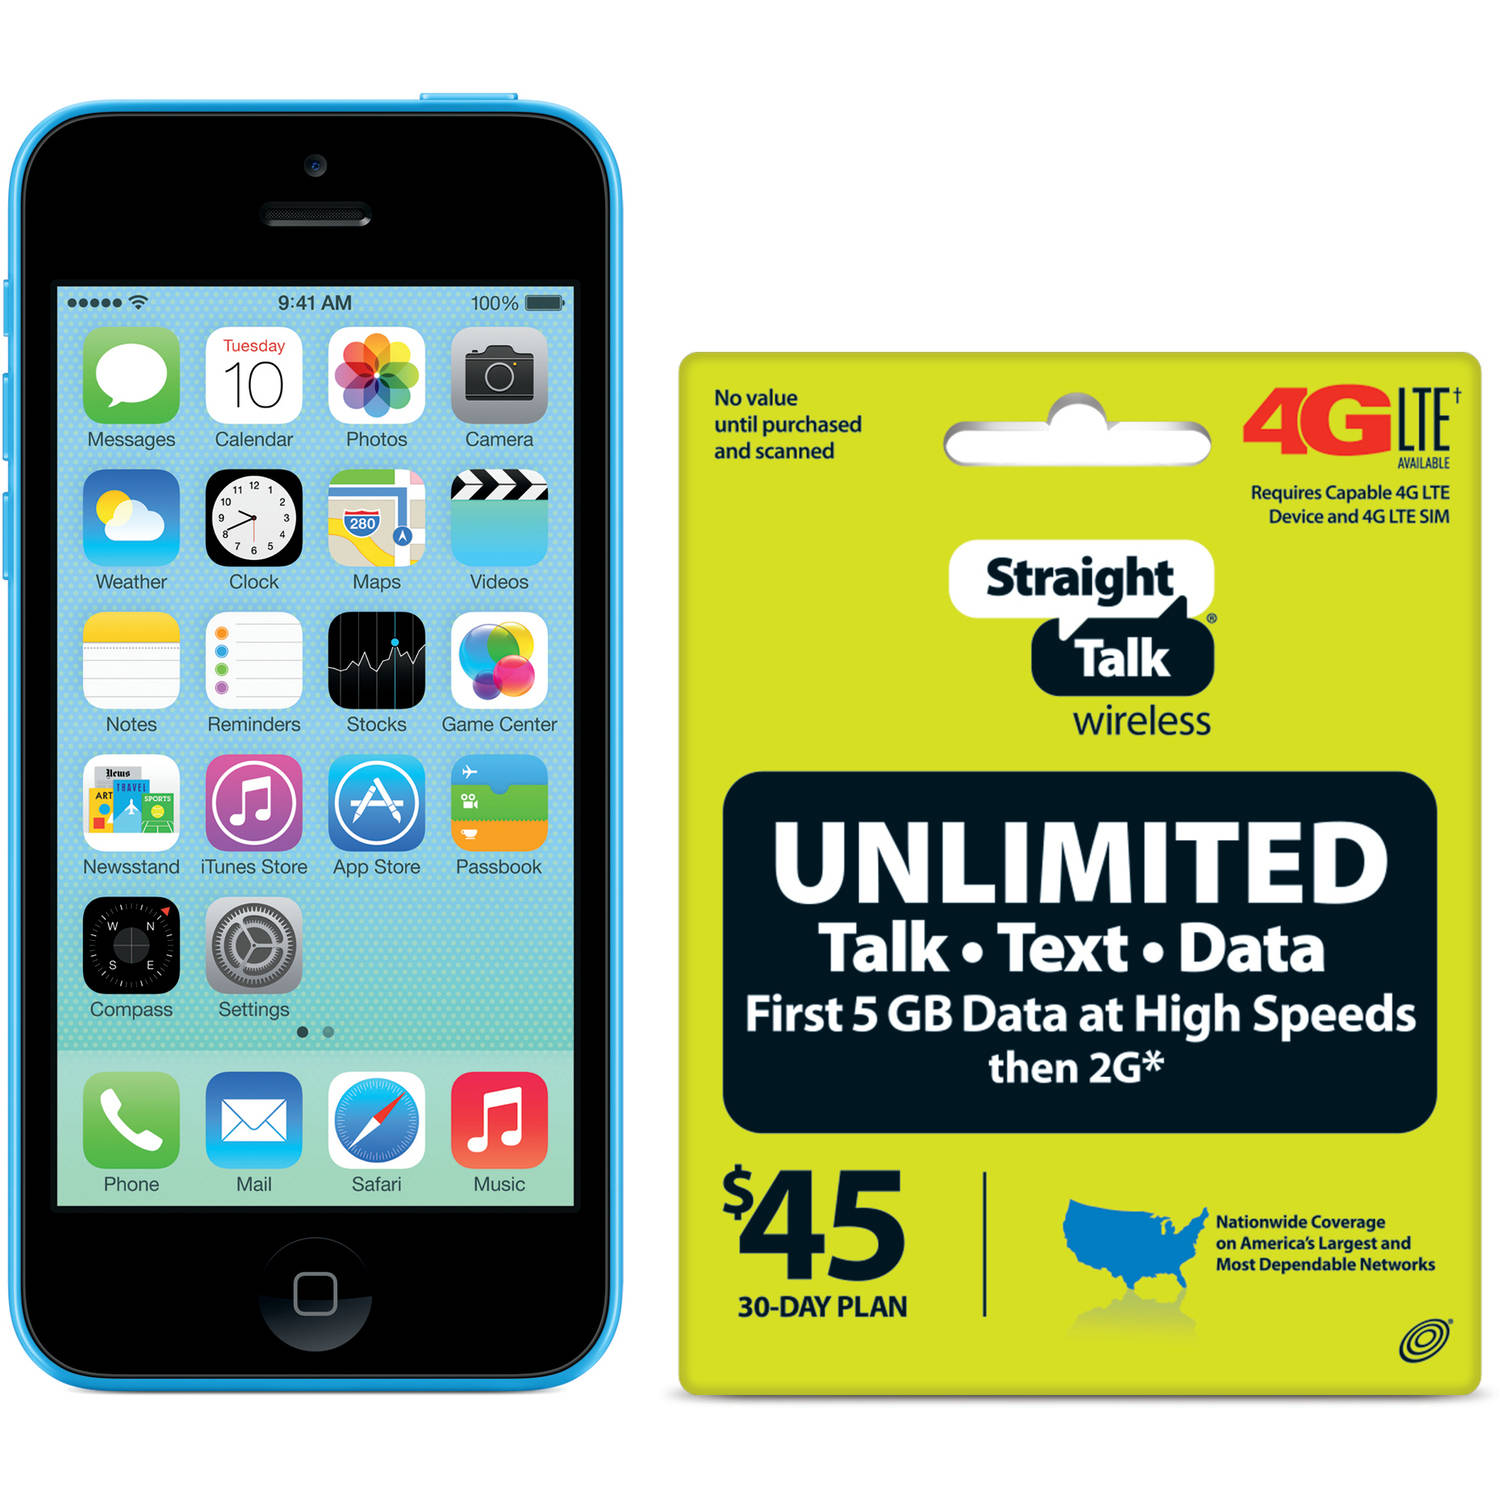 Straight Talk Apple iPhone 5C 8GB 4G LTE Refurbished Prepaid Smartphone w/ Bonus $45 30-Day Plan